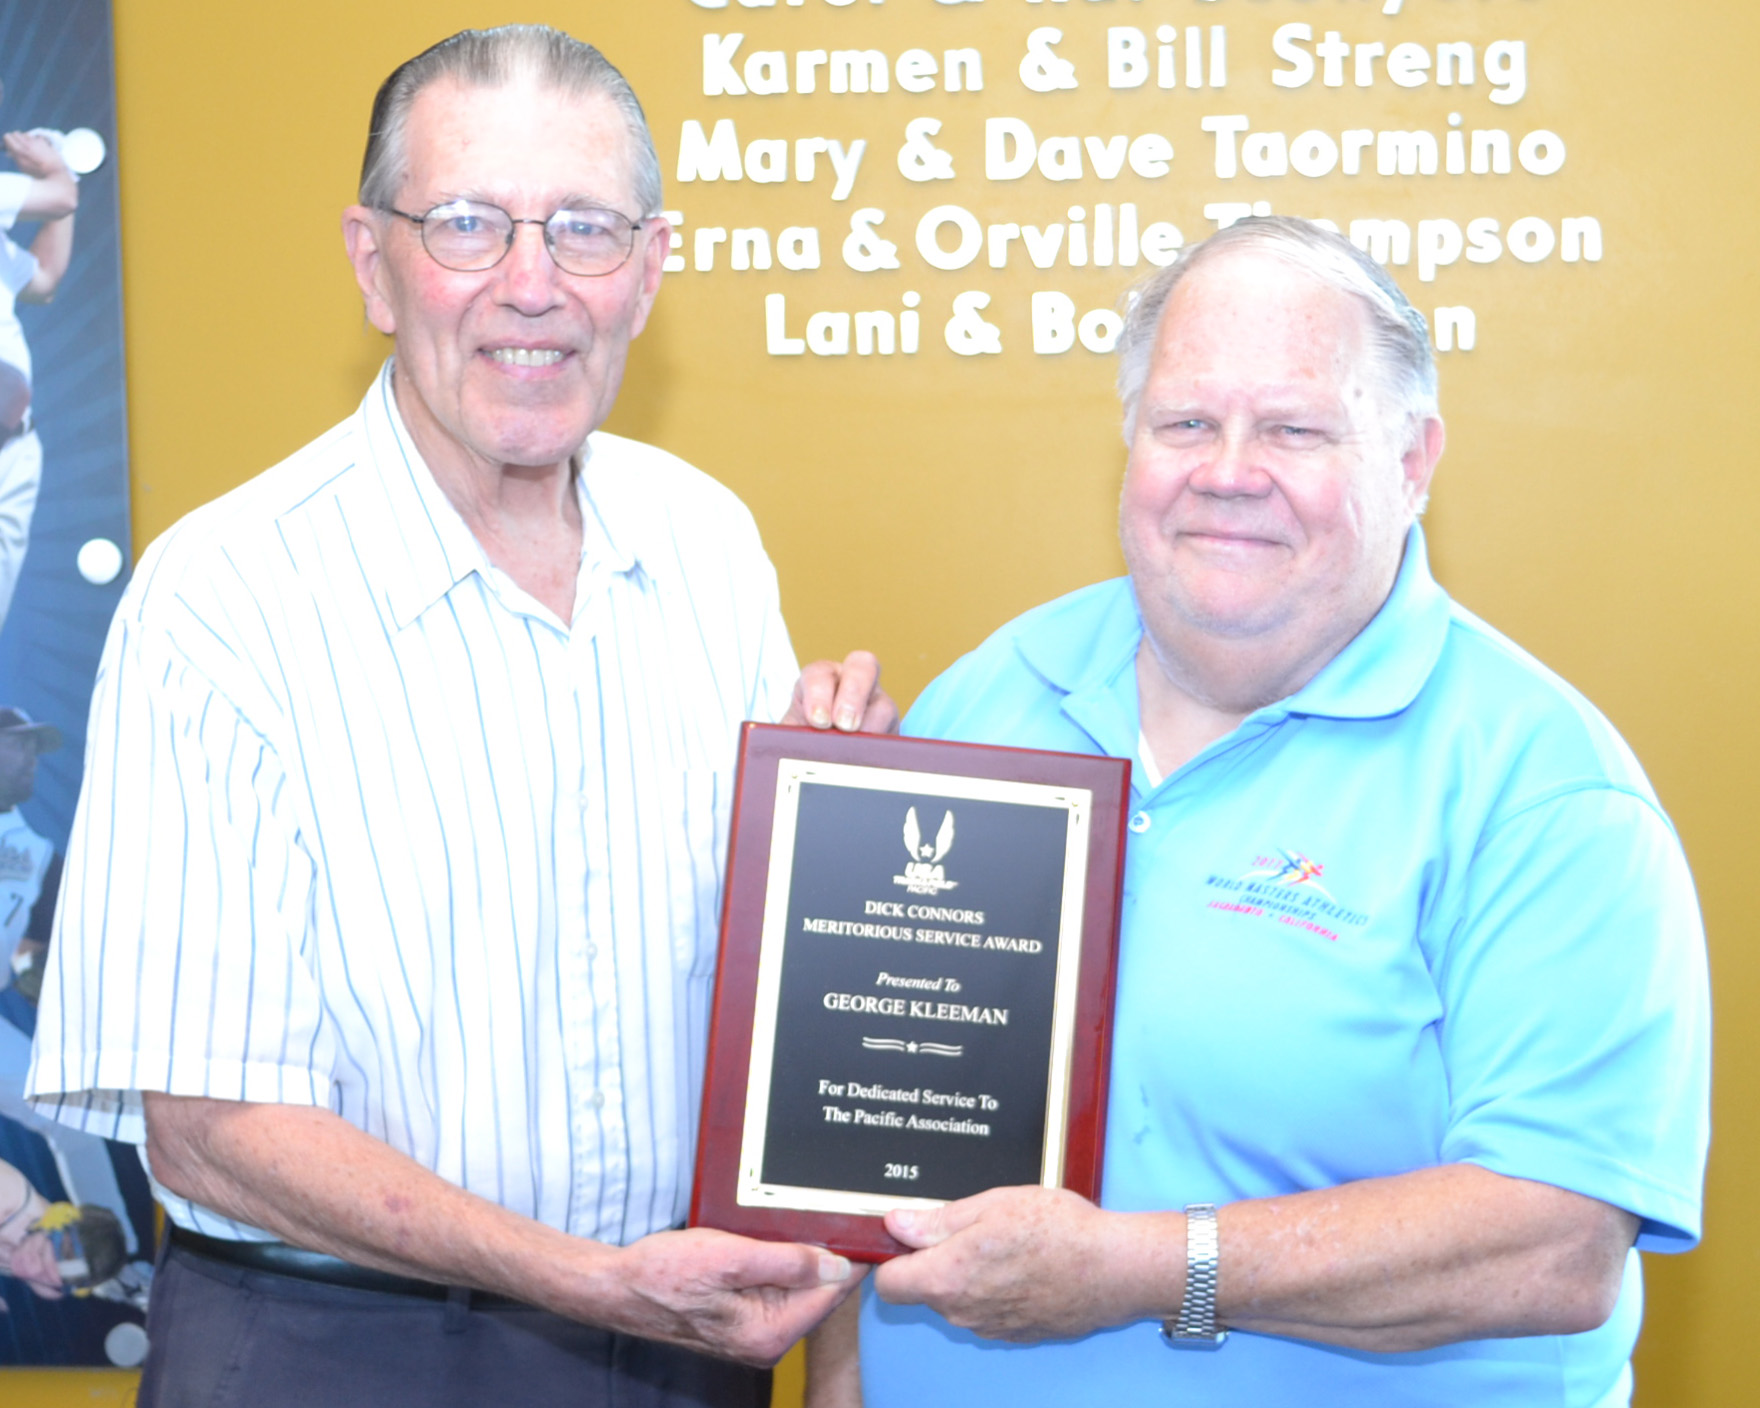 Dick Connors Meritorious Service Award.George Kleeman